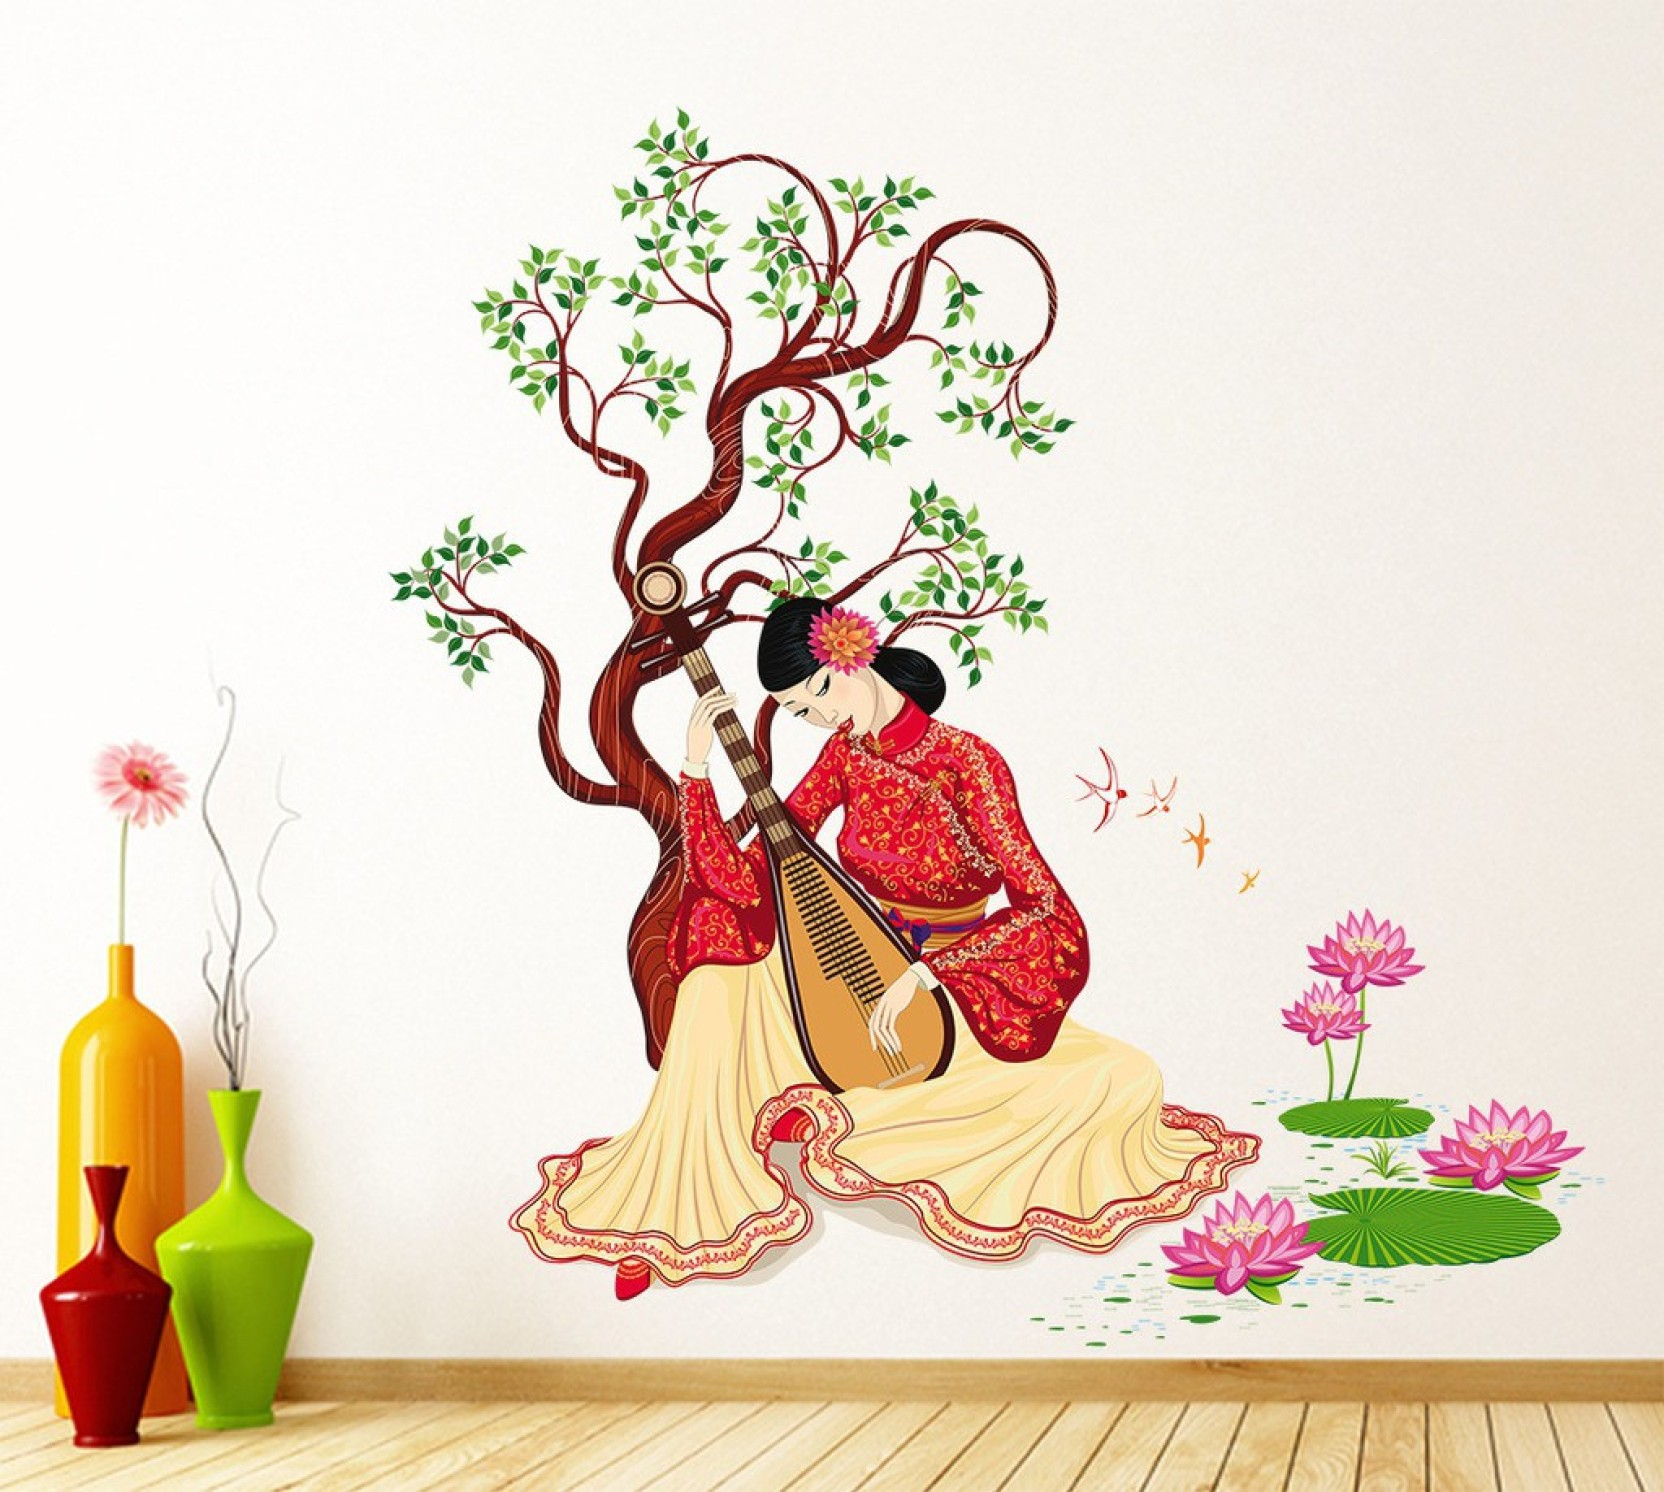 Aquire Extra Large Wall Sticker Price In India Buy Circuit Board Tree Vinyl Art Graphic Stickers Decals Add To Cart